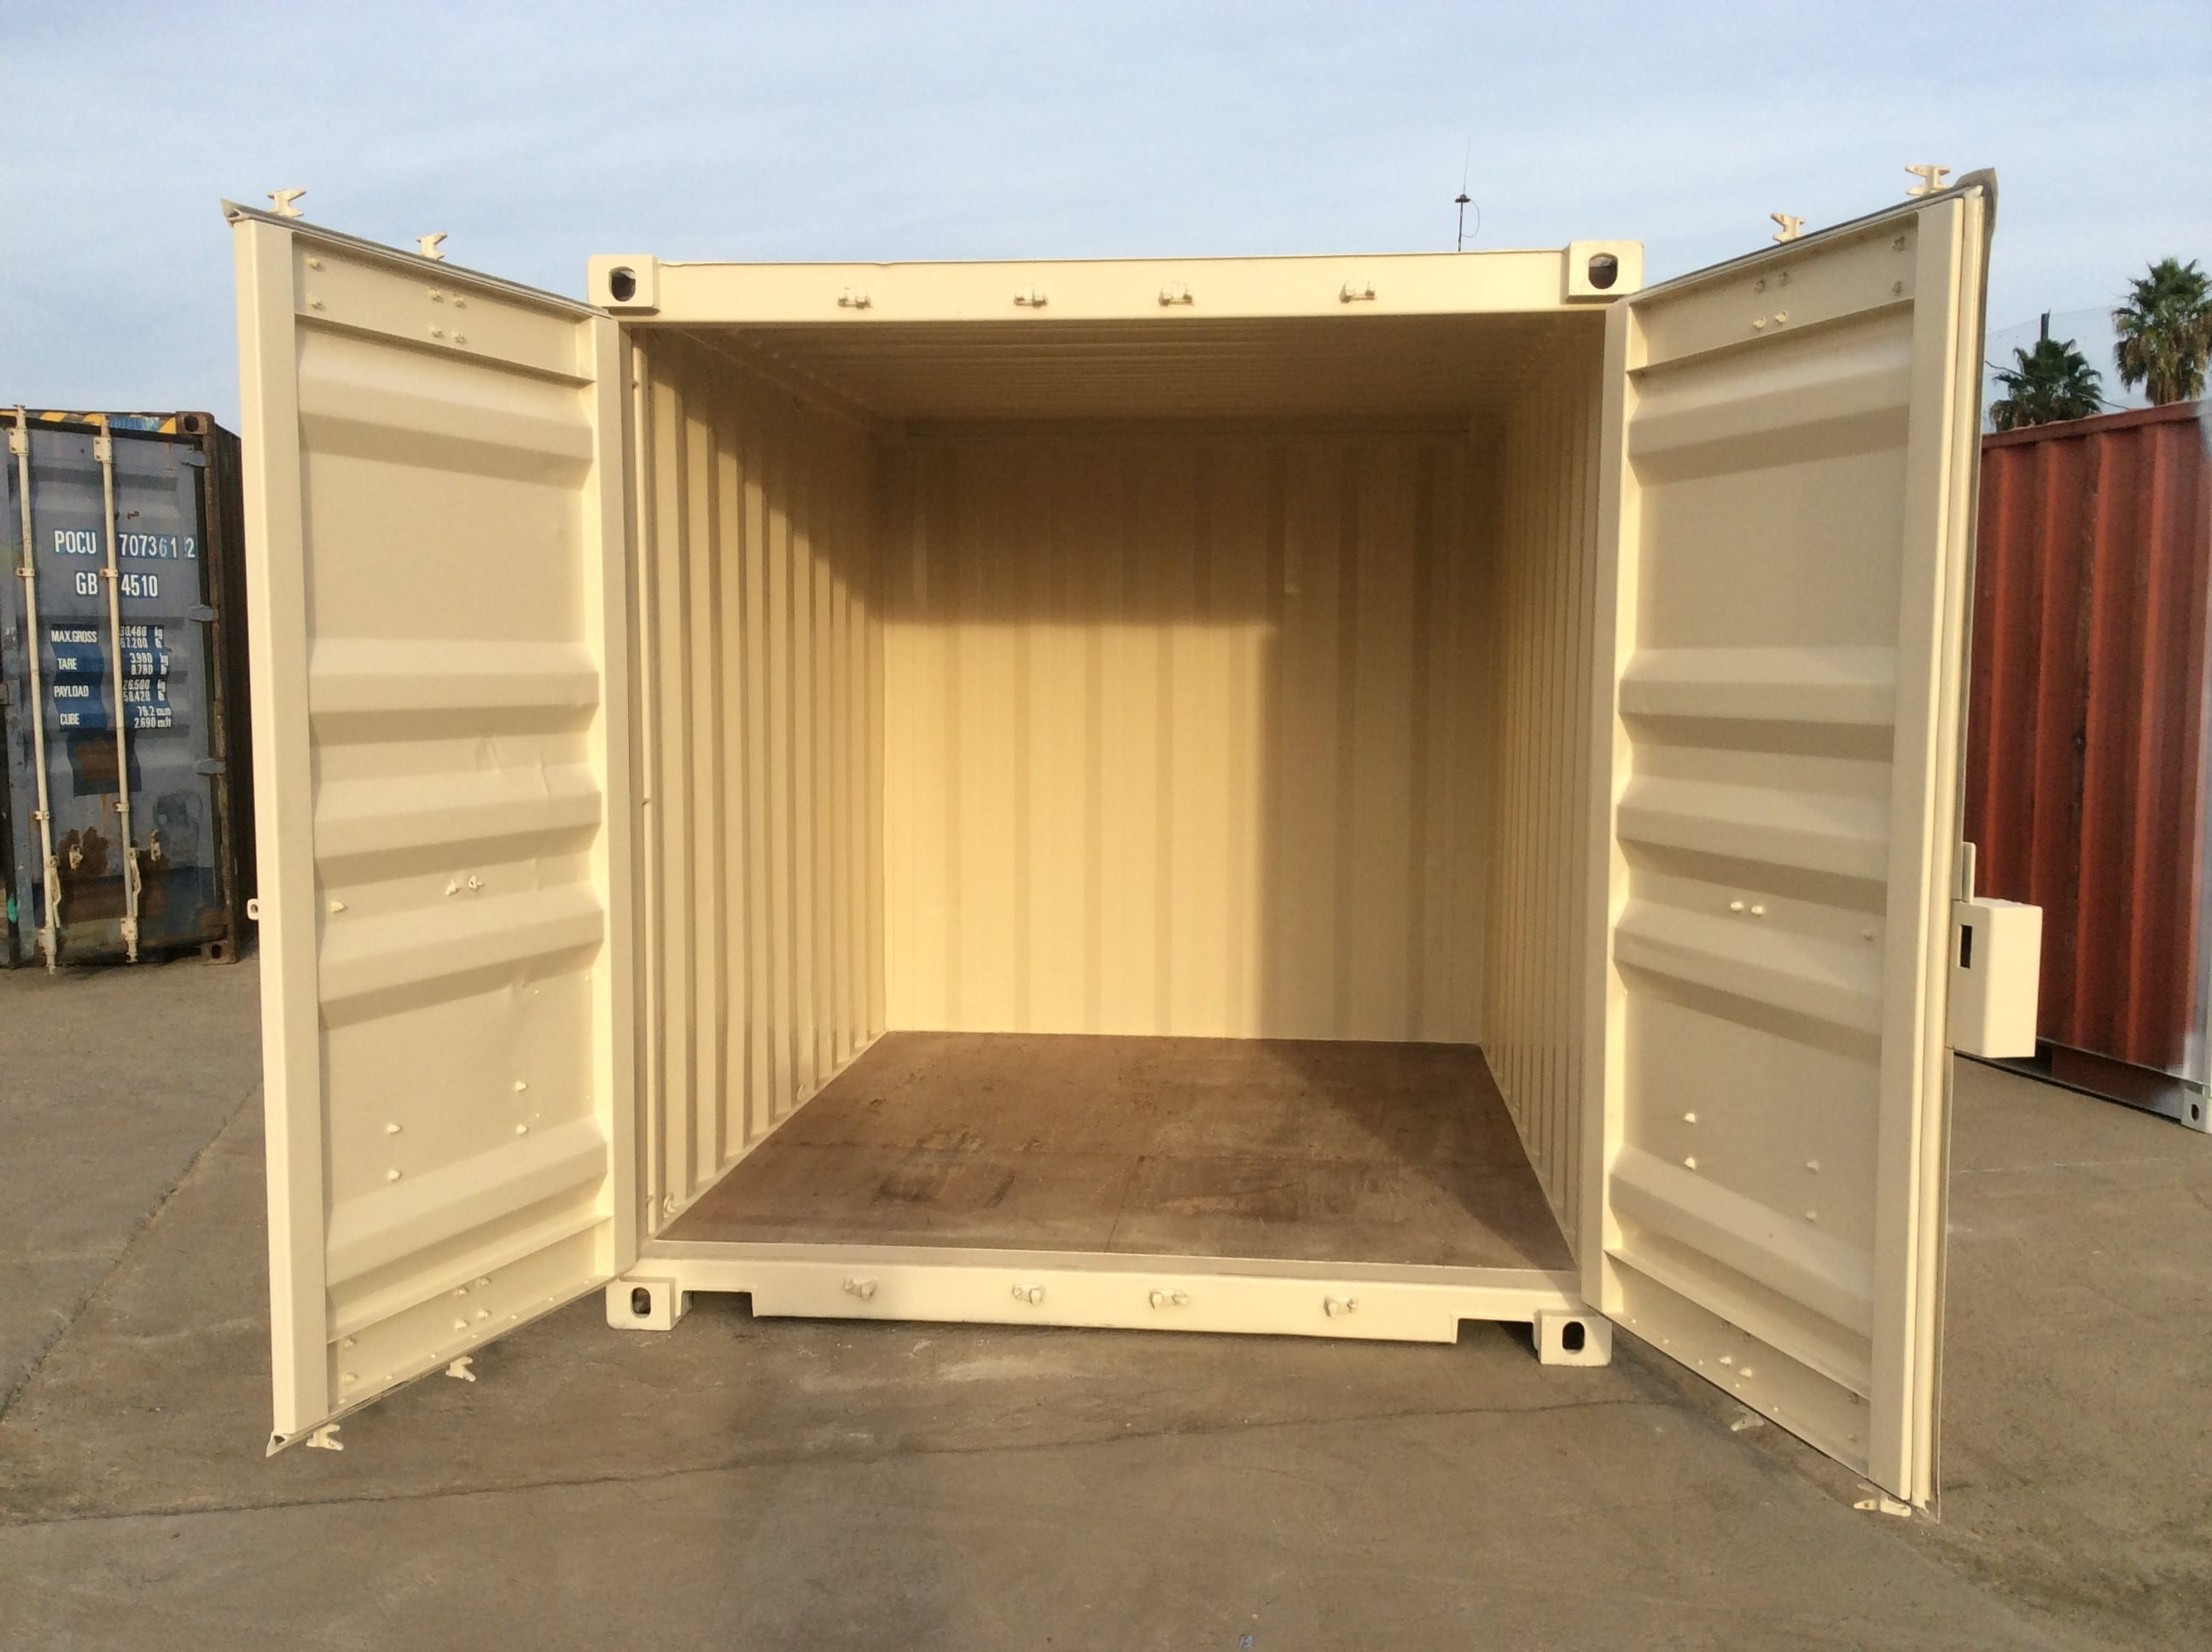 interior view of 10 ft shipping container